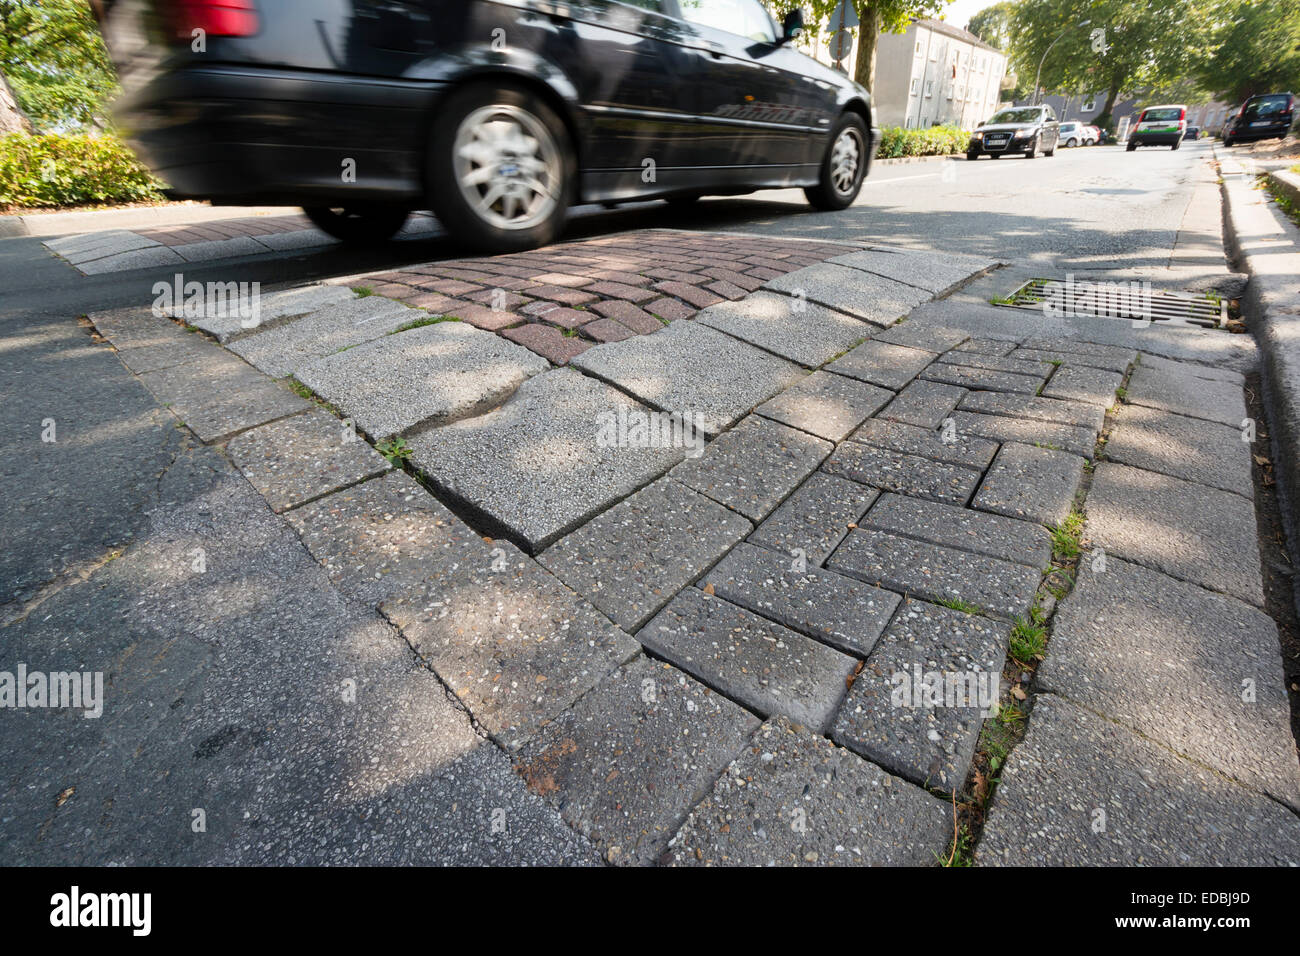 Cars drive on a street in the Ruhr area that is in bad condition and like many others in need of redevelopment. - Stock Image